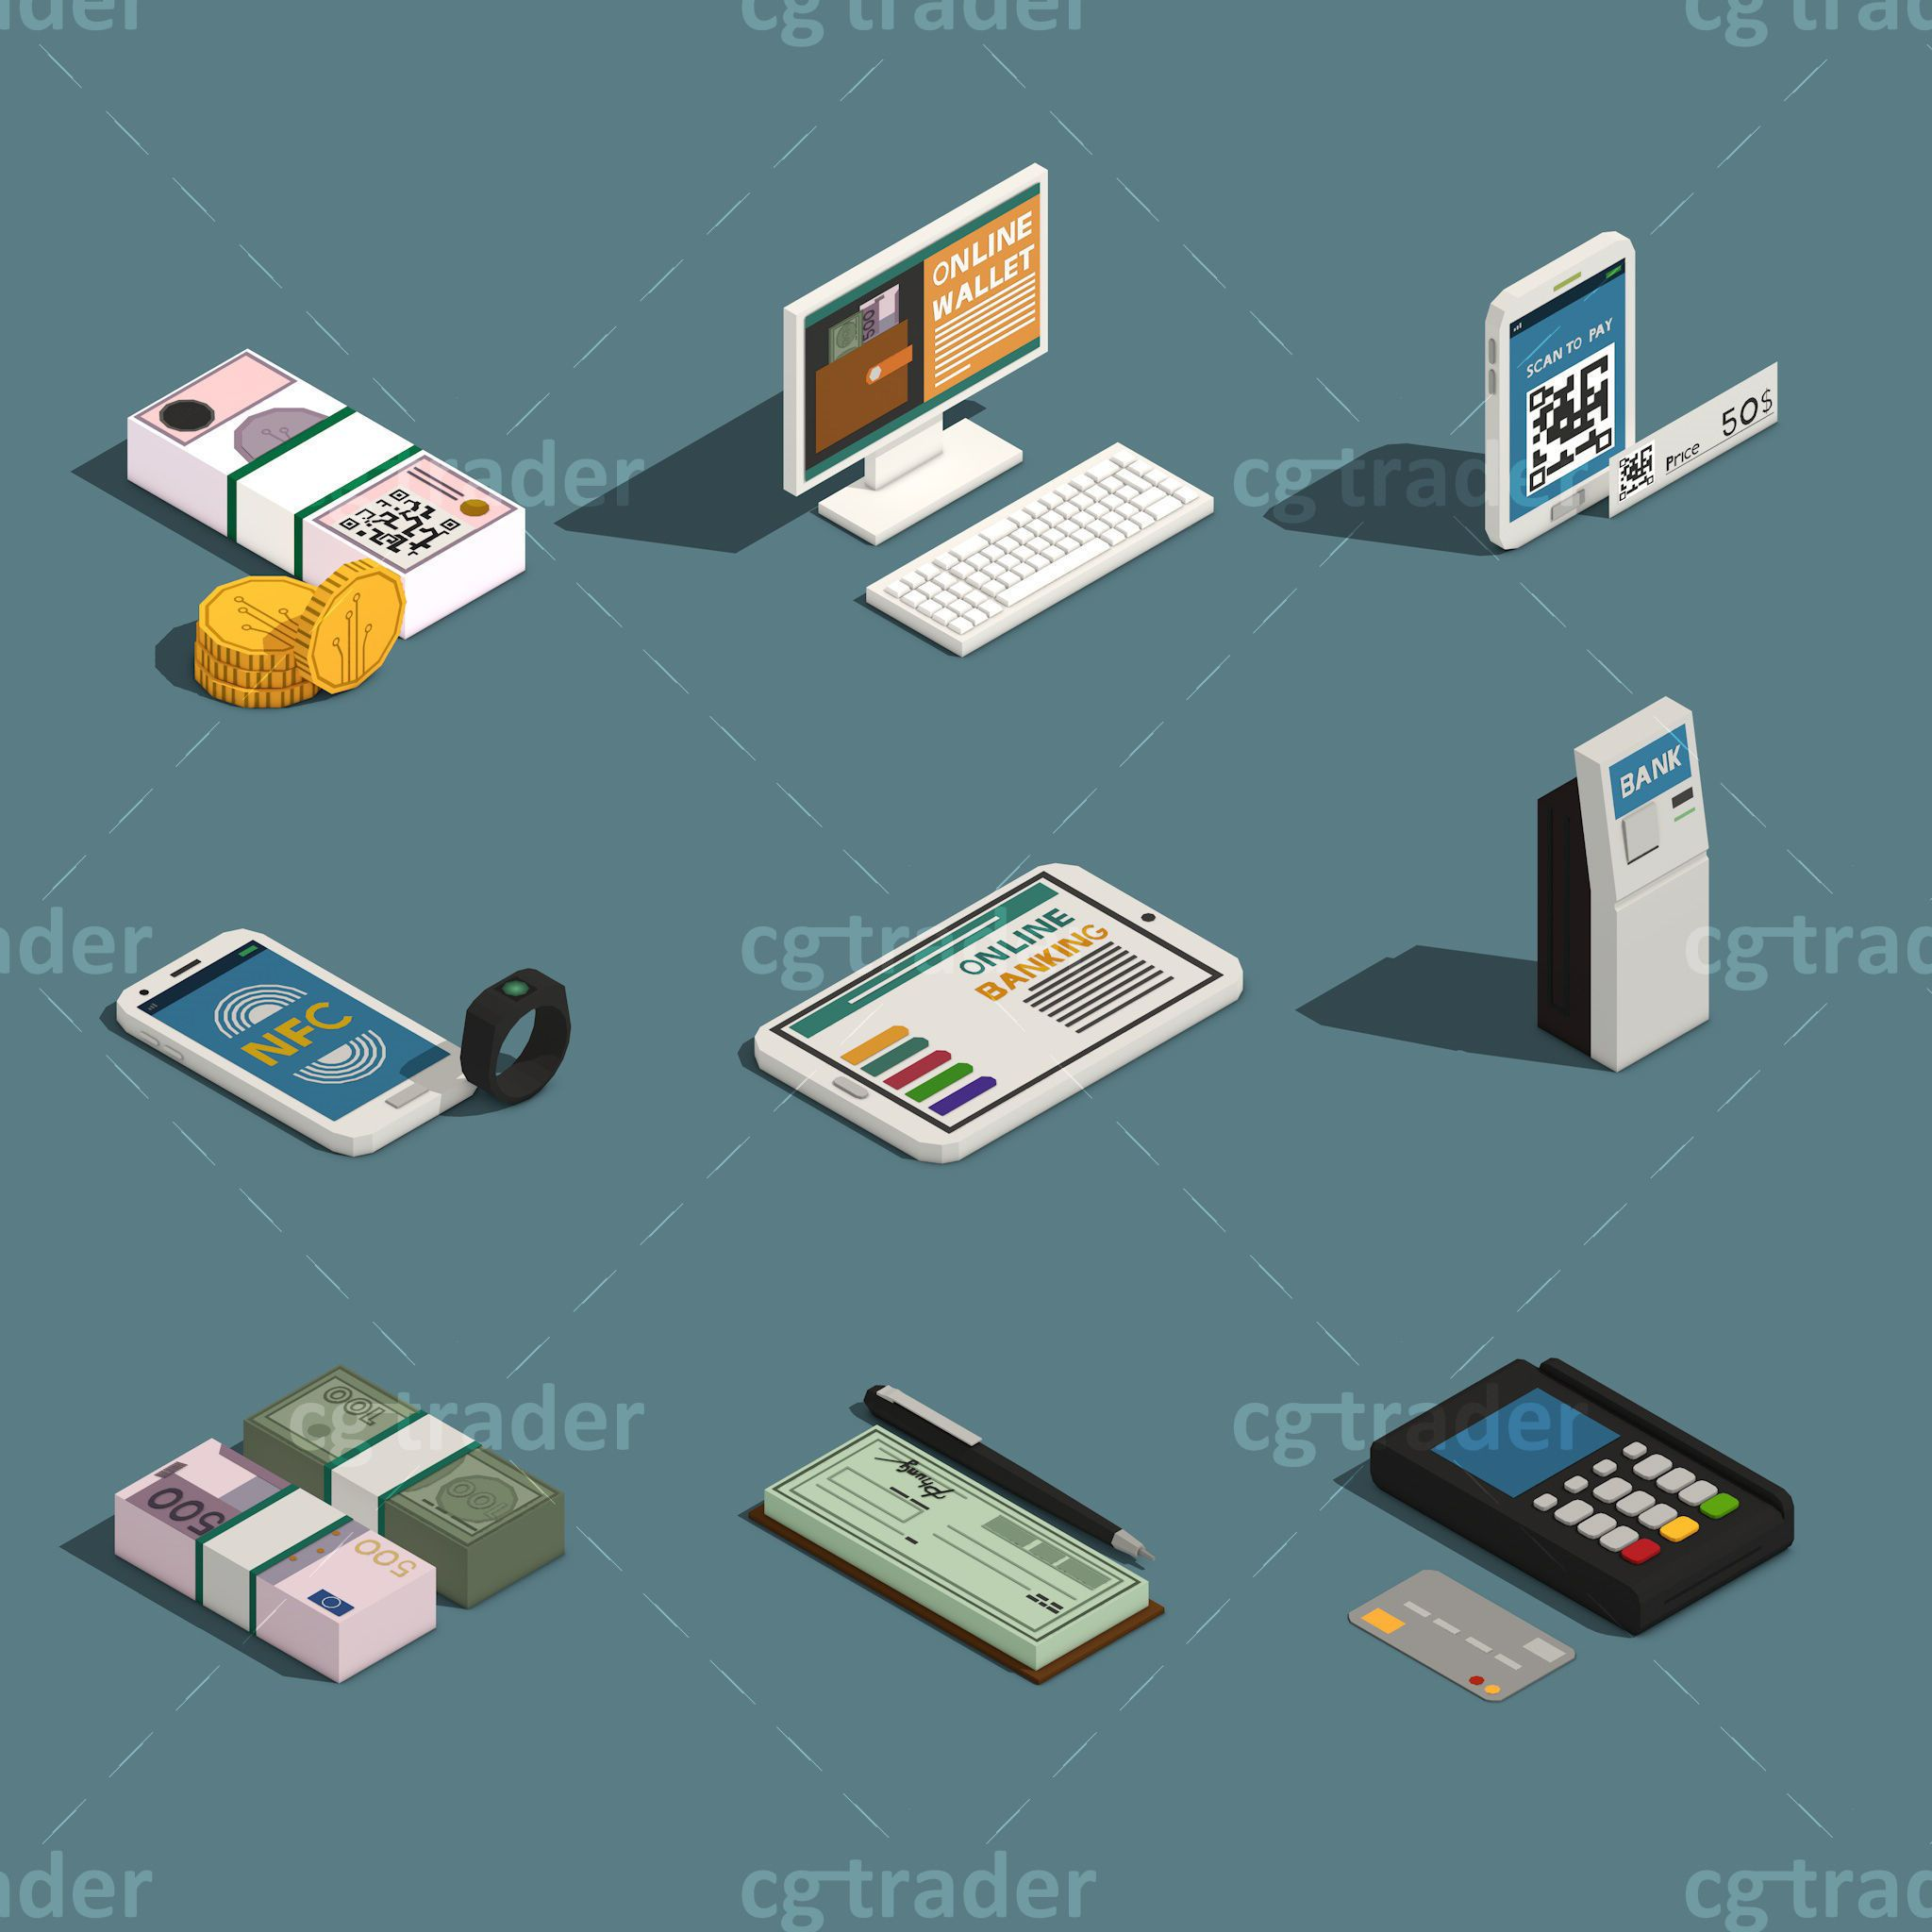 Low Poly Payment Methods Isometric 3d Model Low Poly Low Poly